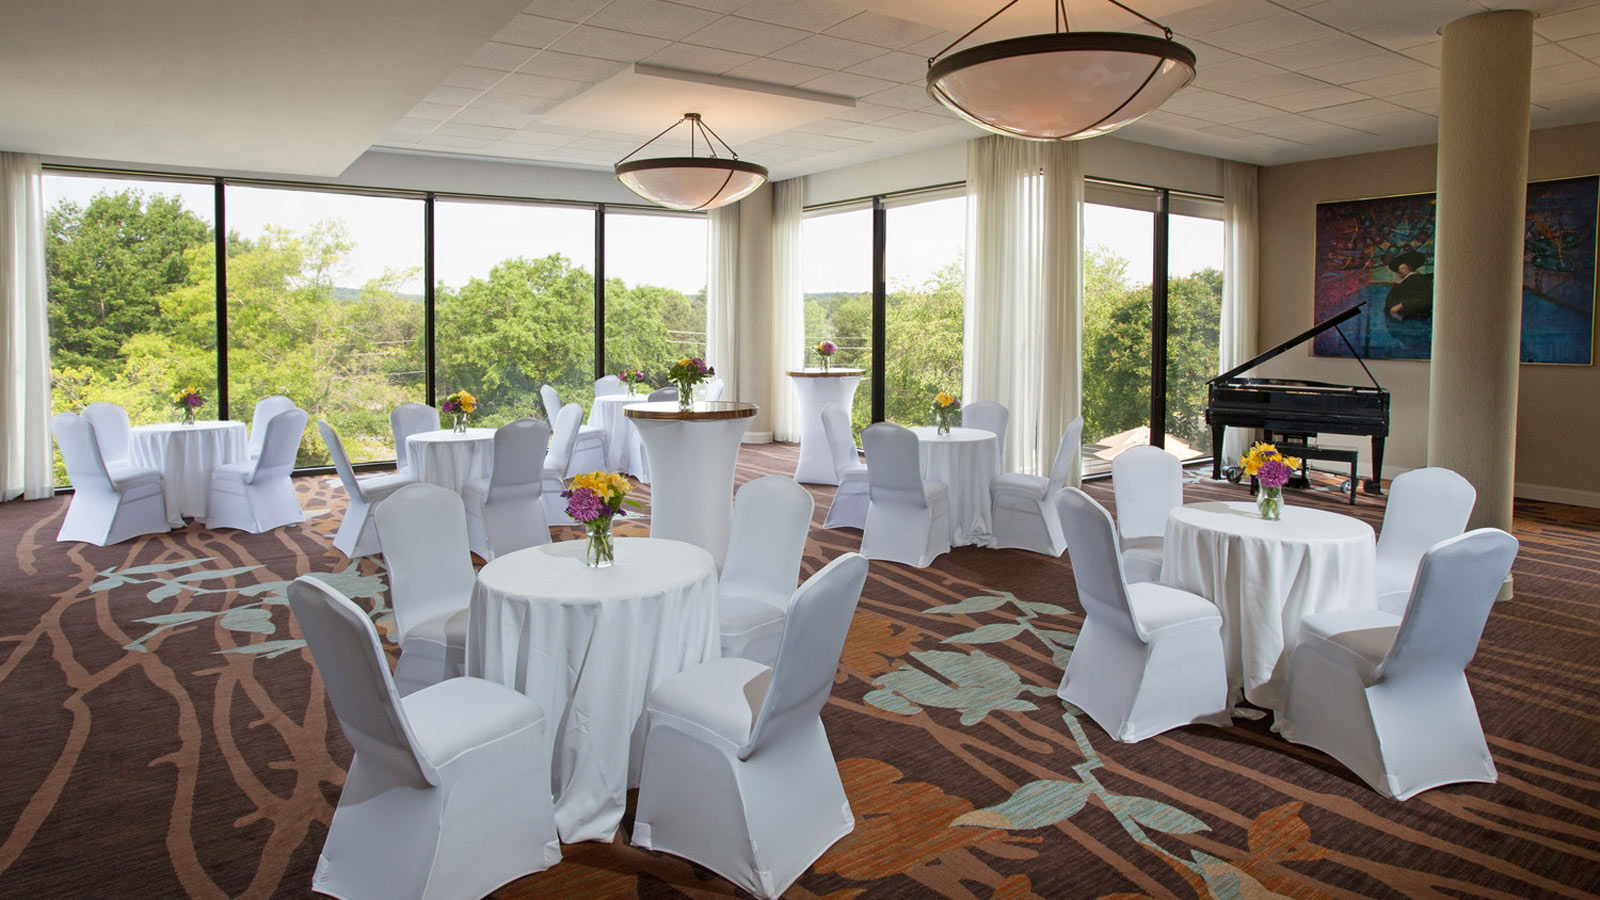 Chapel Hill Wedding Venues - Ballroom setup